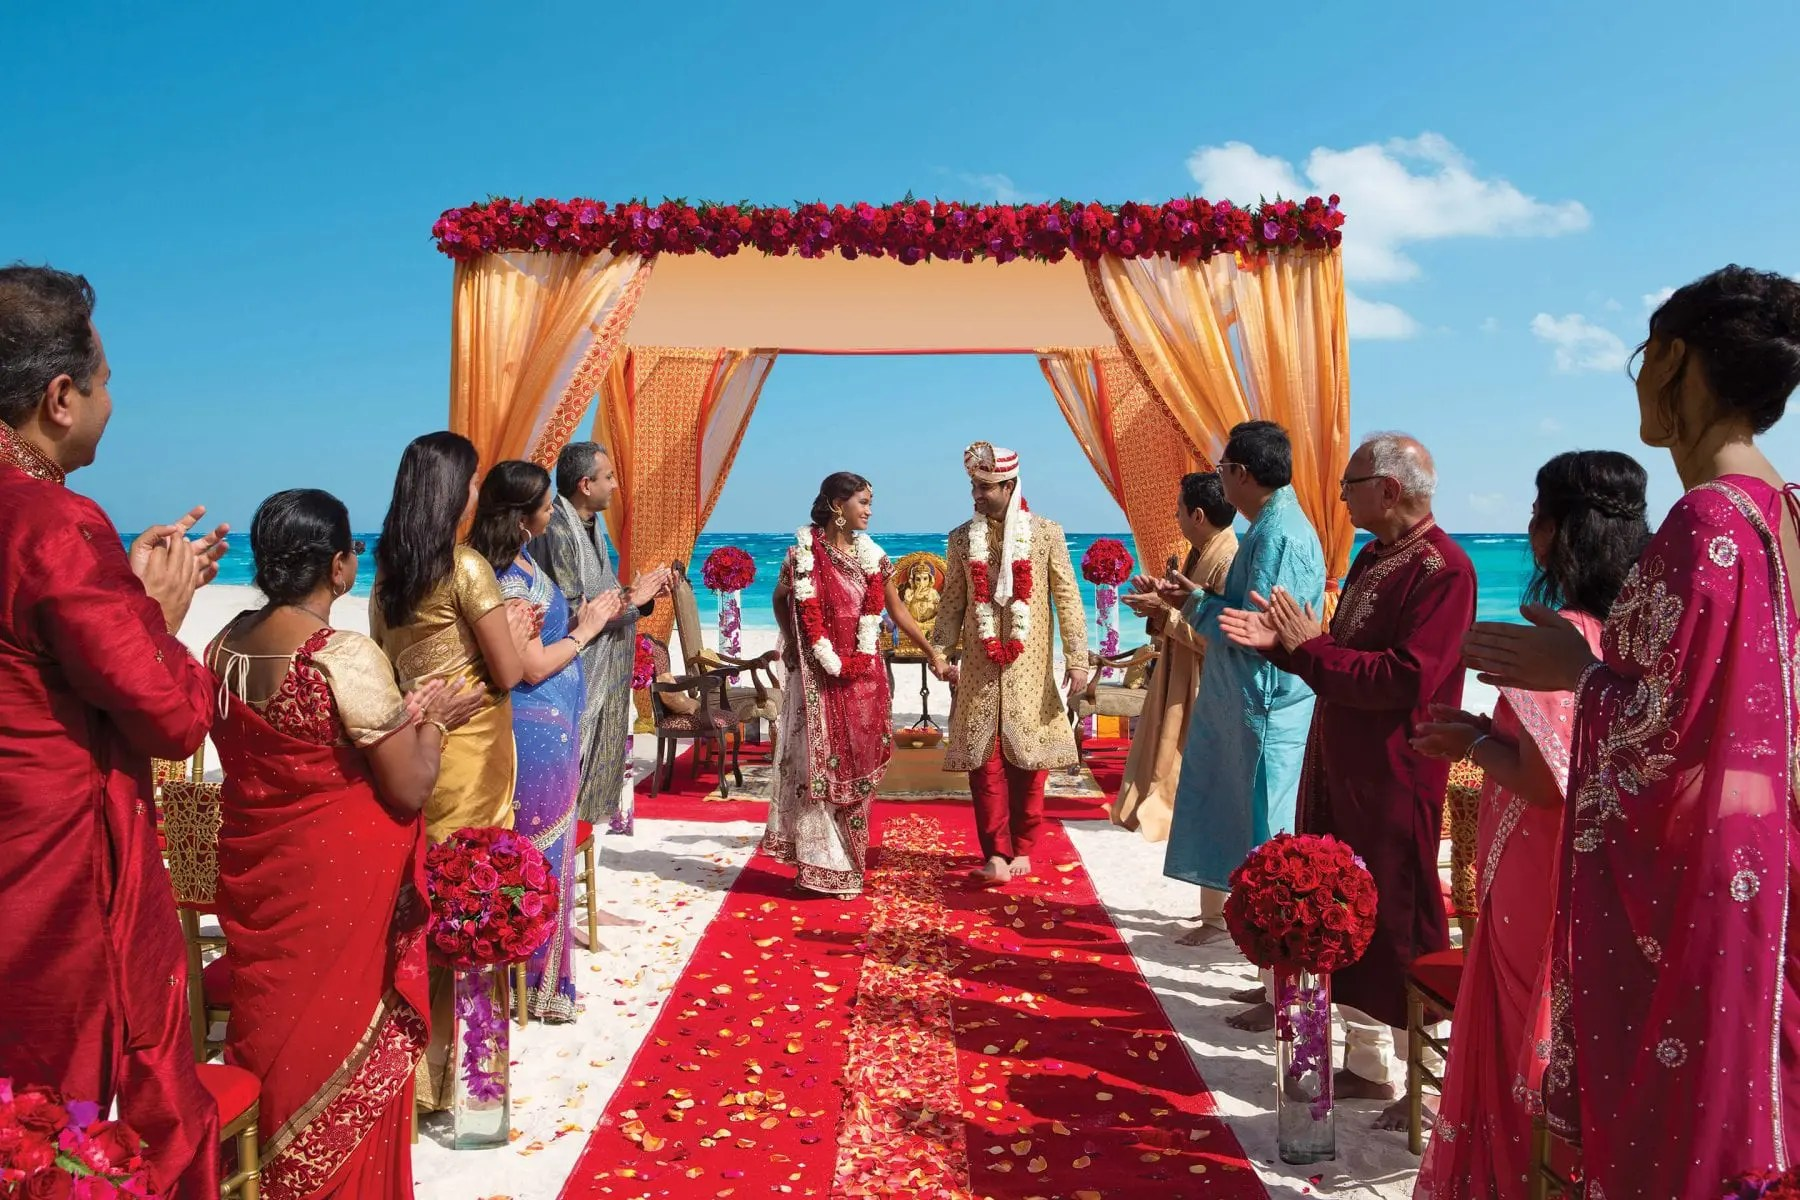 10 Best Resorts For Indian Weddings In Mexico 21